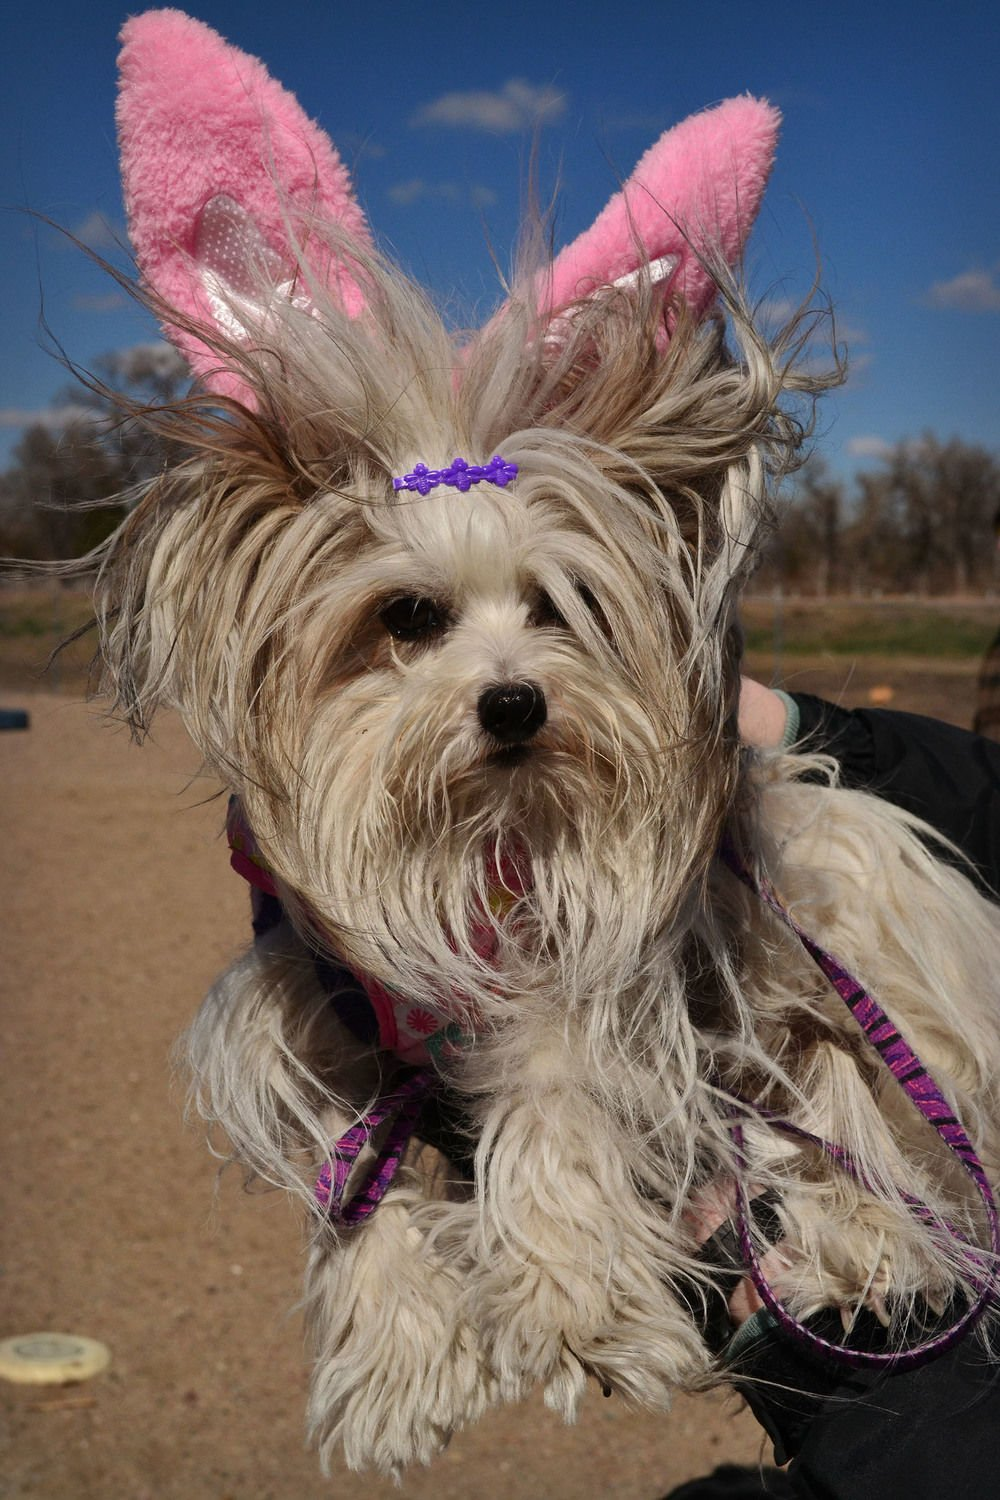 Dog Park Committee hosting Doggy Easter Egg Hunt set for April 15